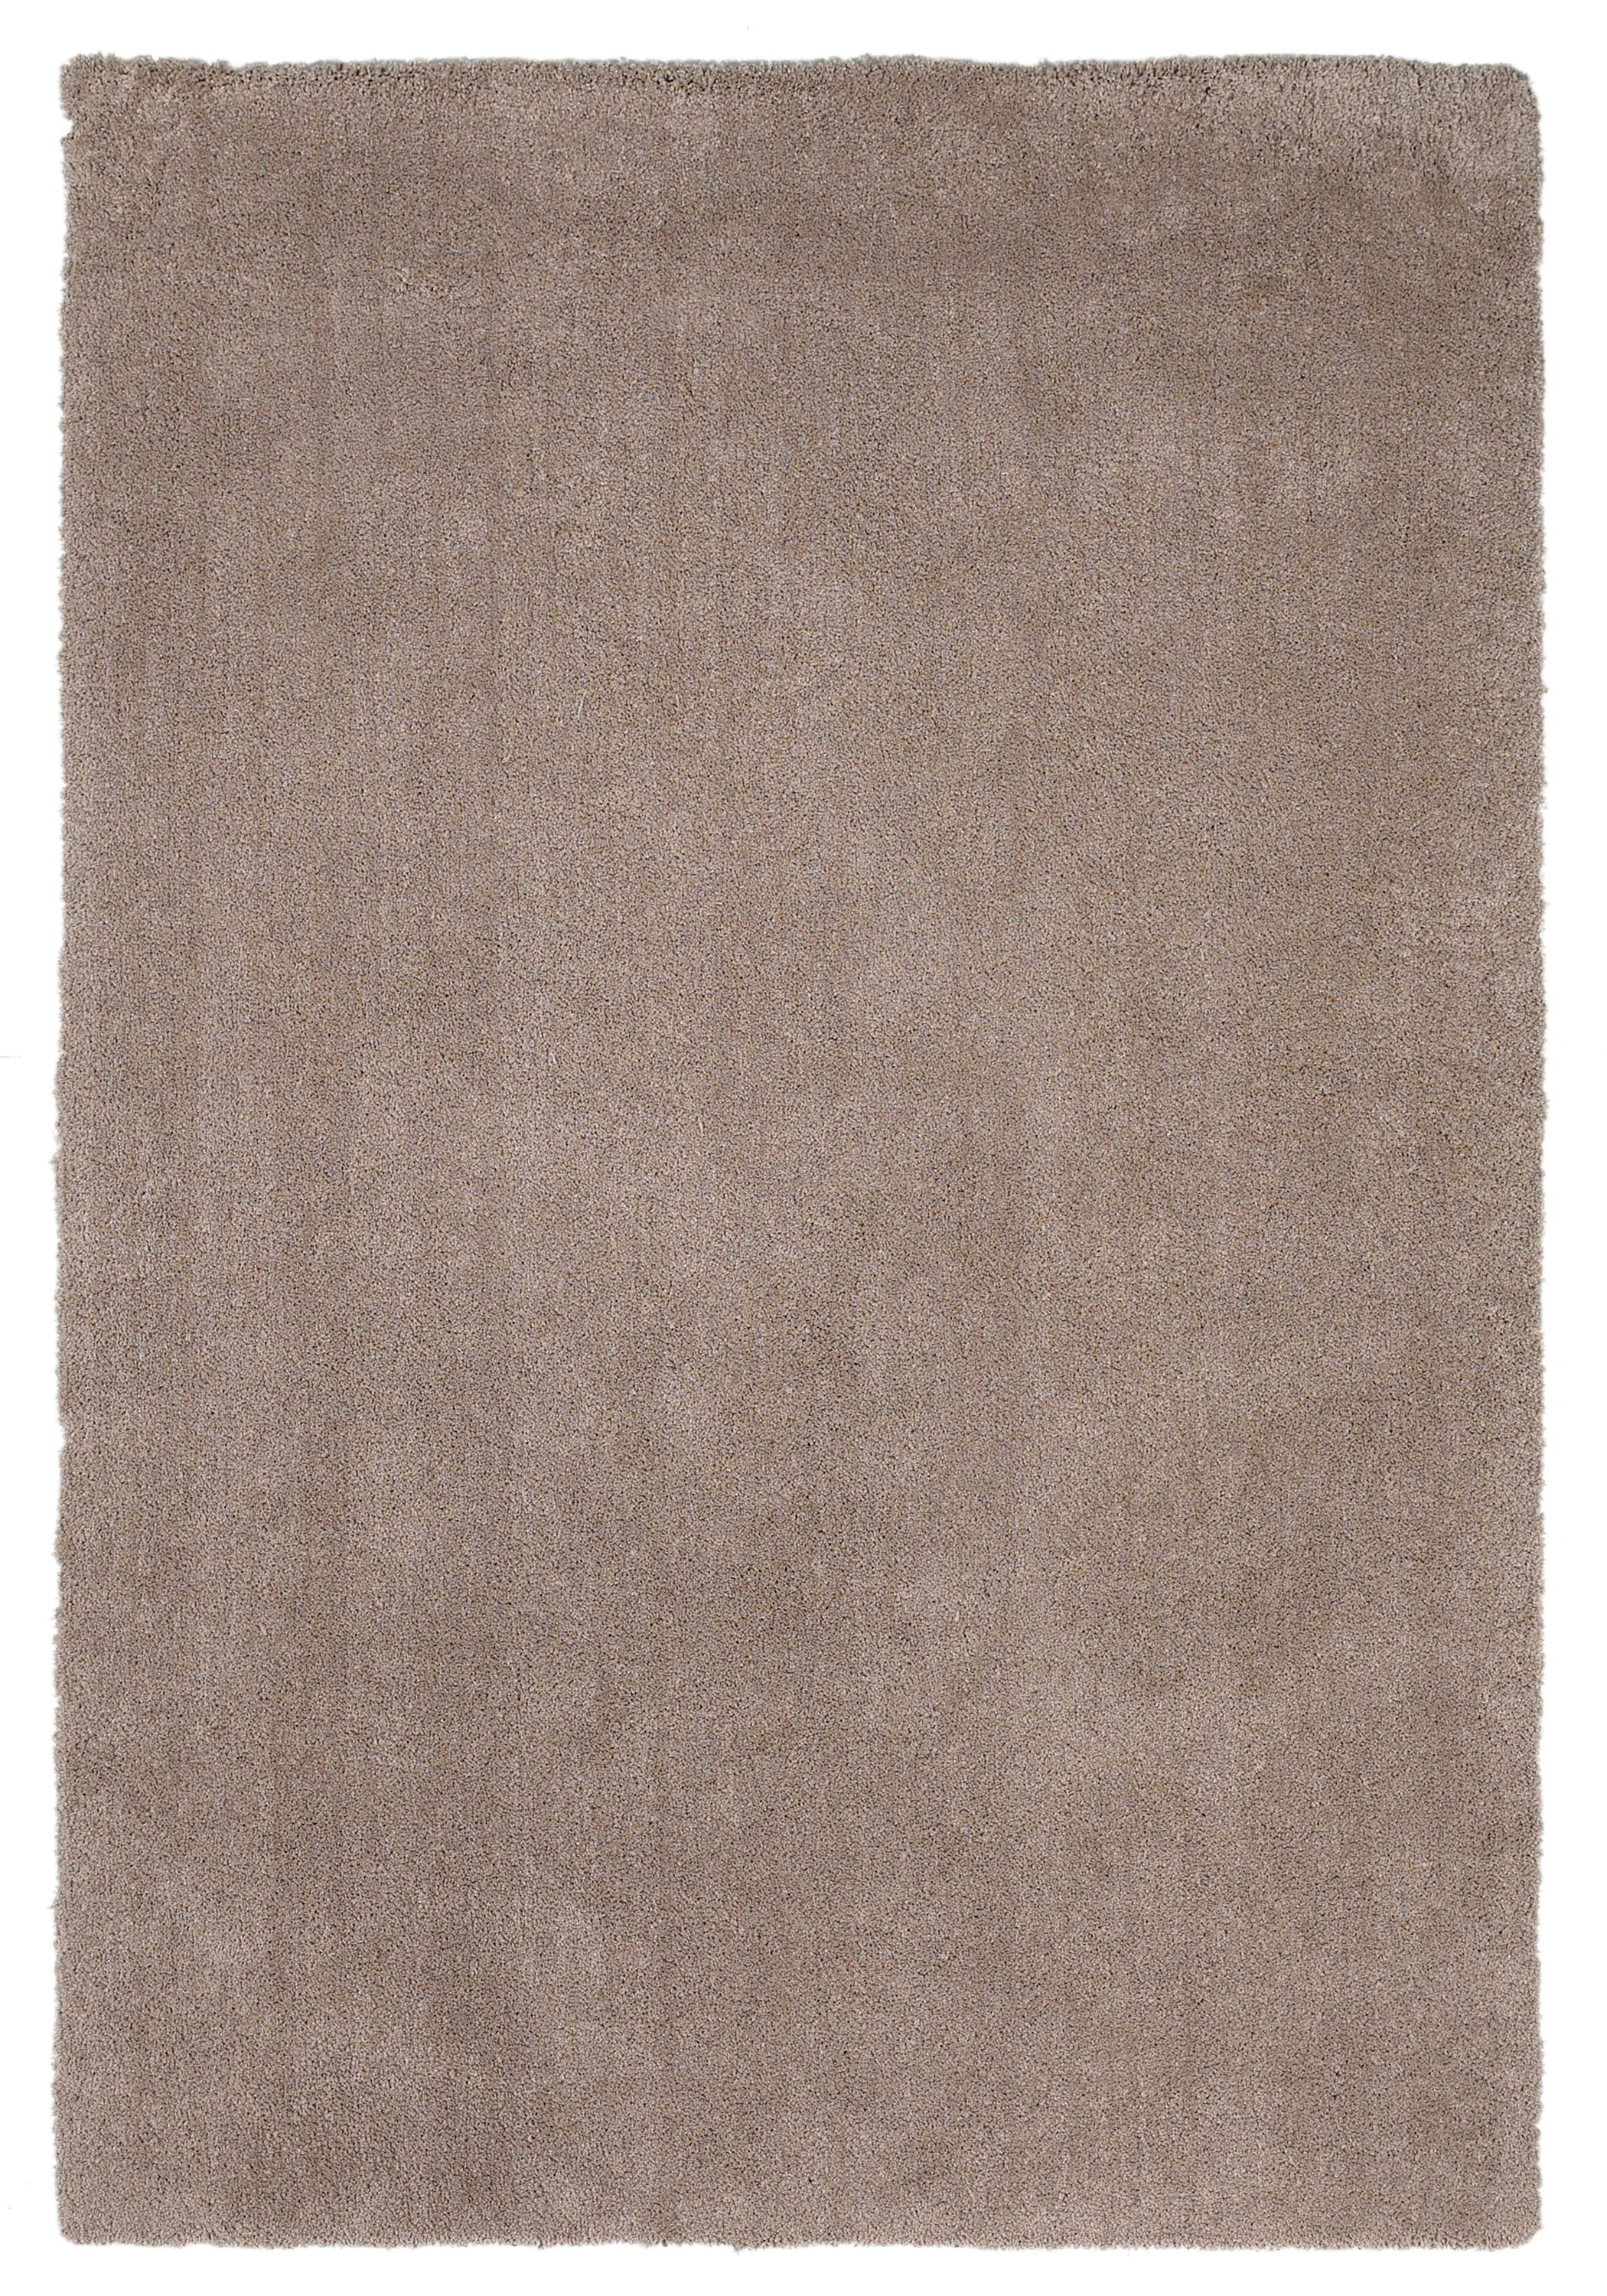 "Kas Bliss 7'6"" X 9'6"" Rug - Item Number: BLI155176X96"